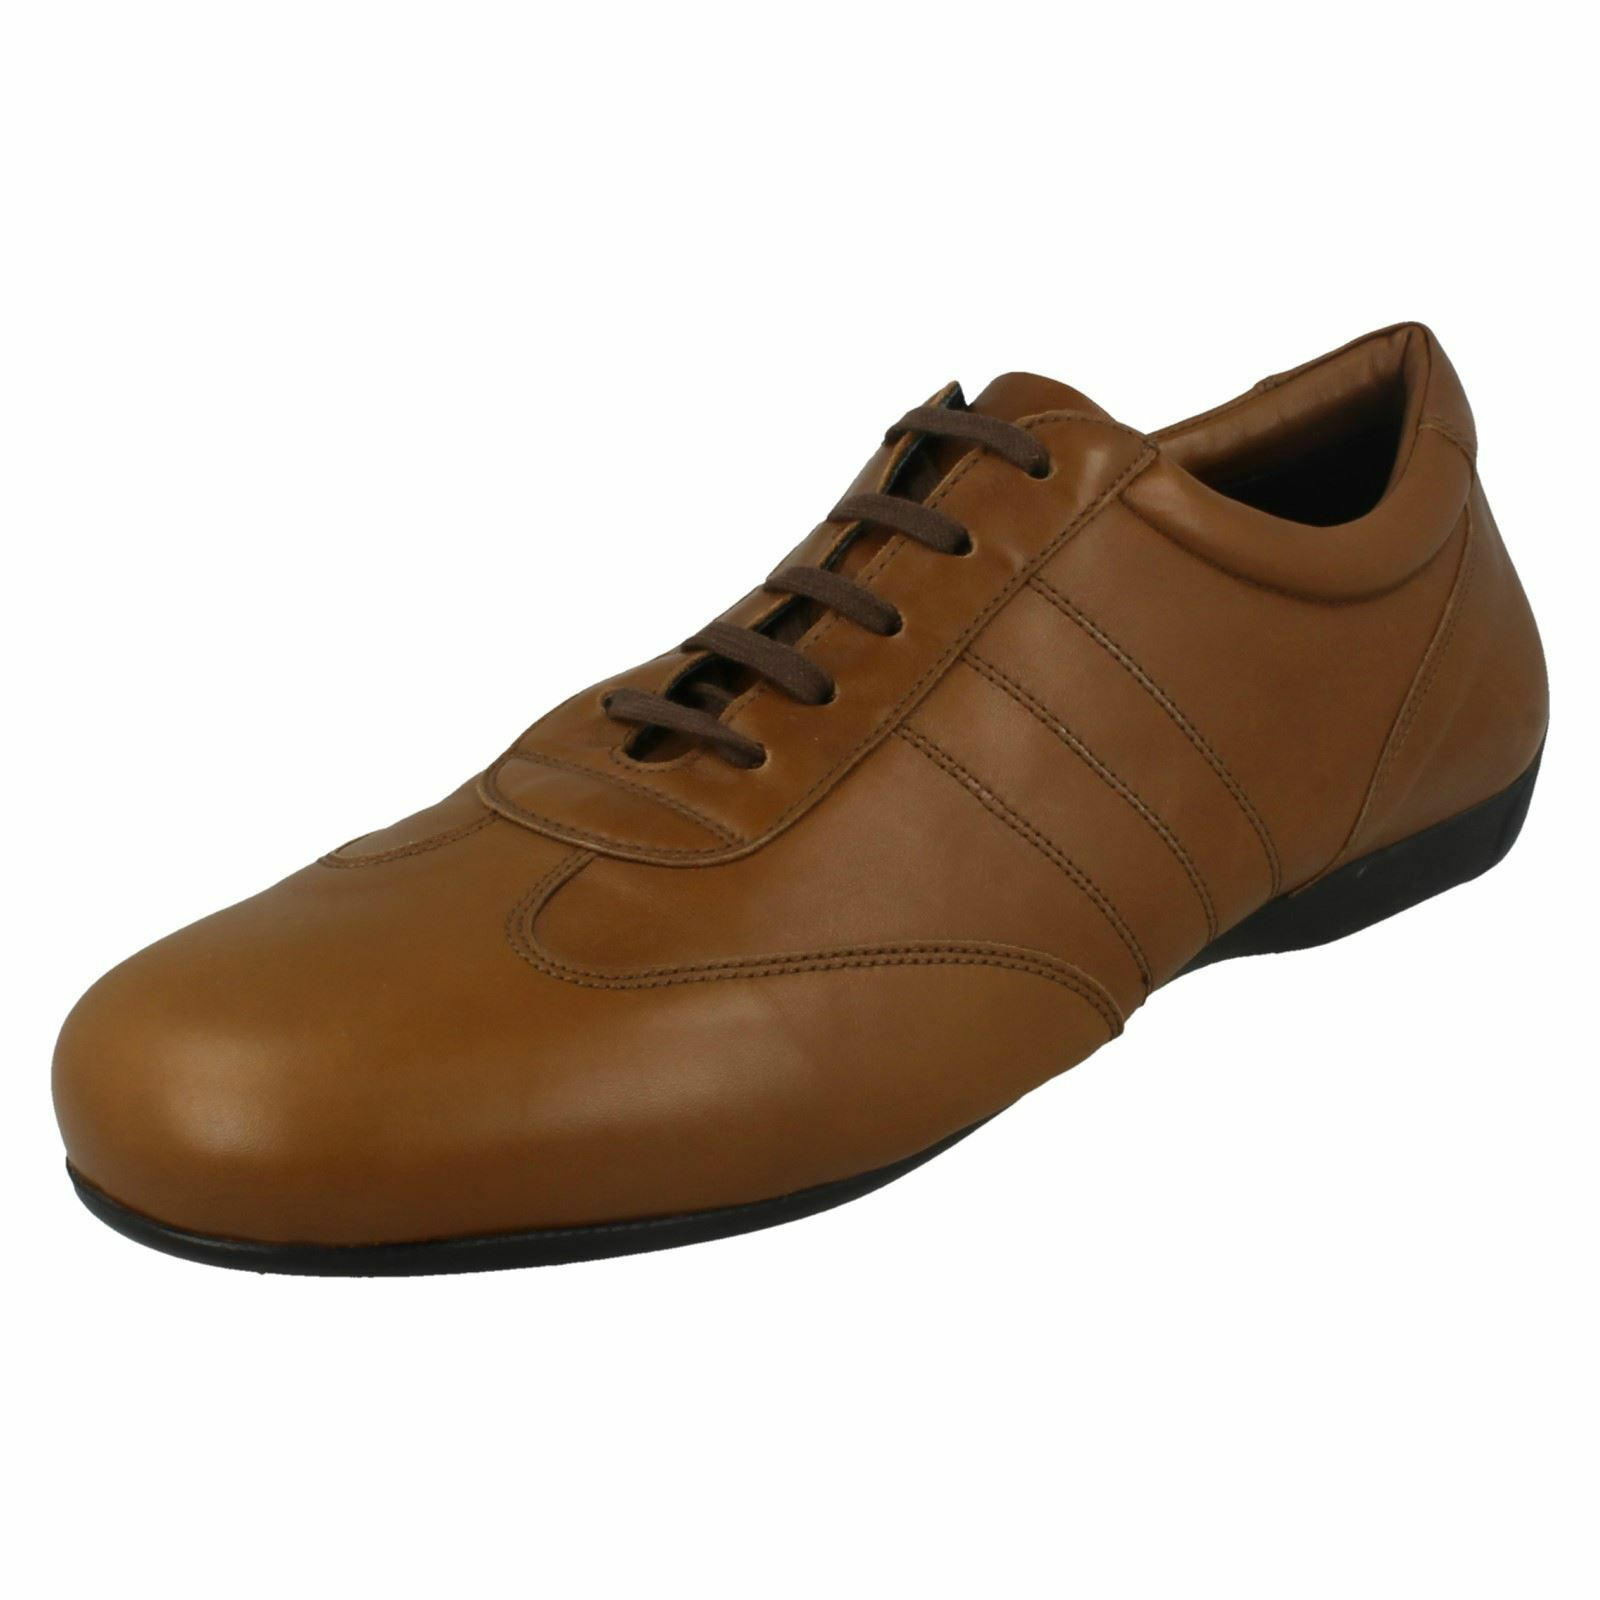 Mens Joseph Cheaney Casual shoes - Rossi